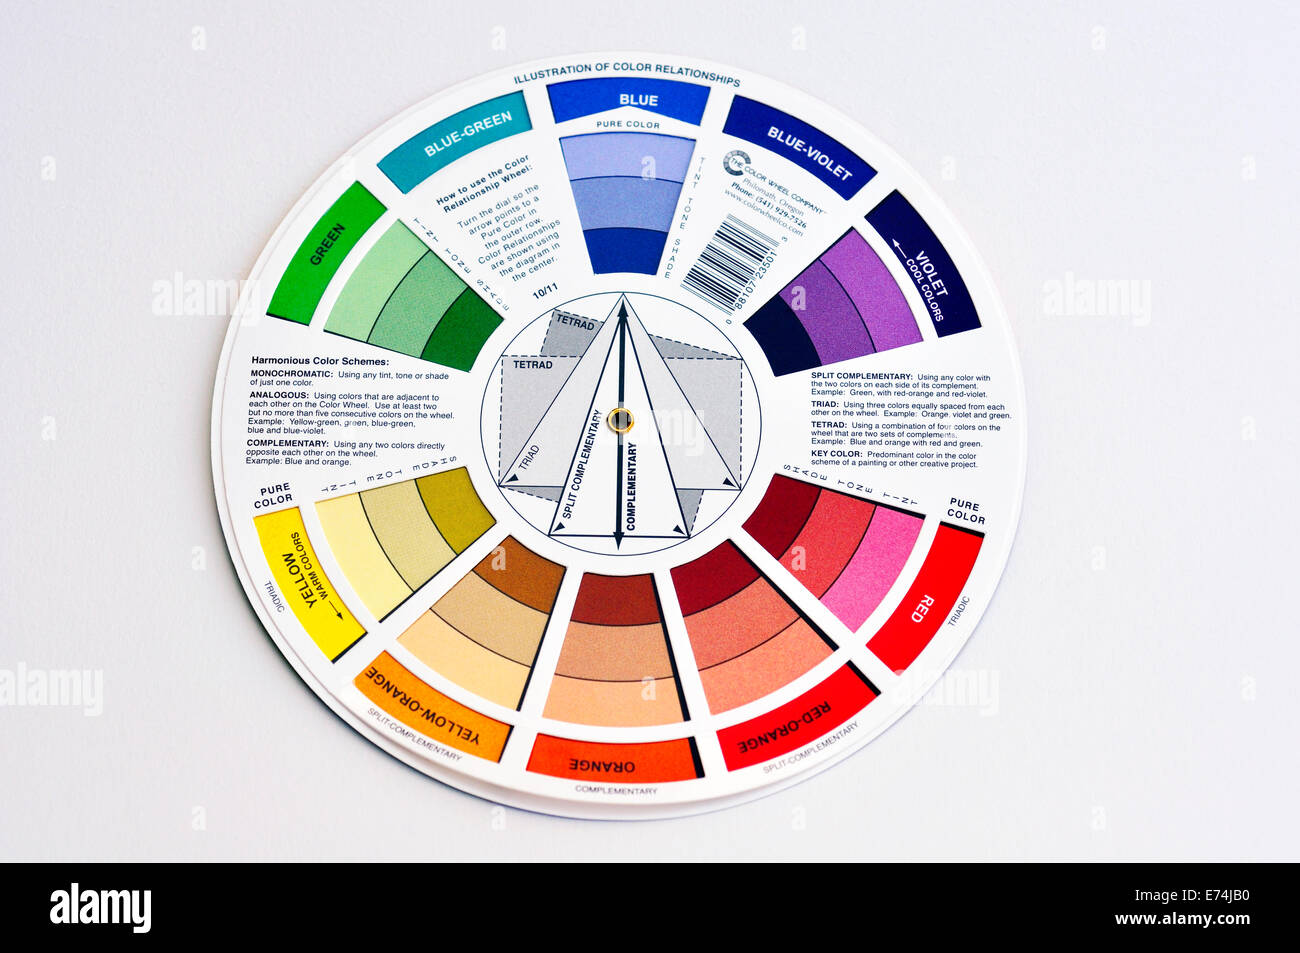 Color Wheel For Artists Stock Photo 73246292 Alamy